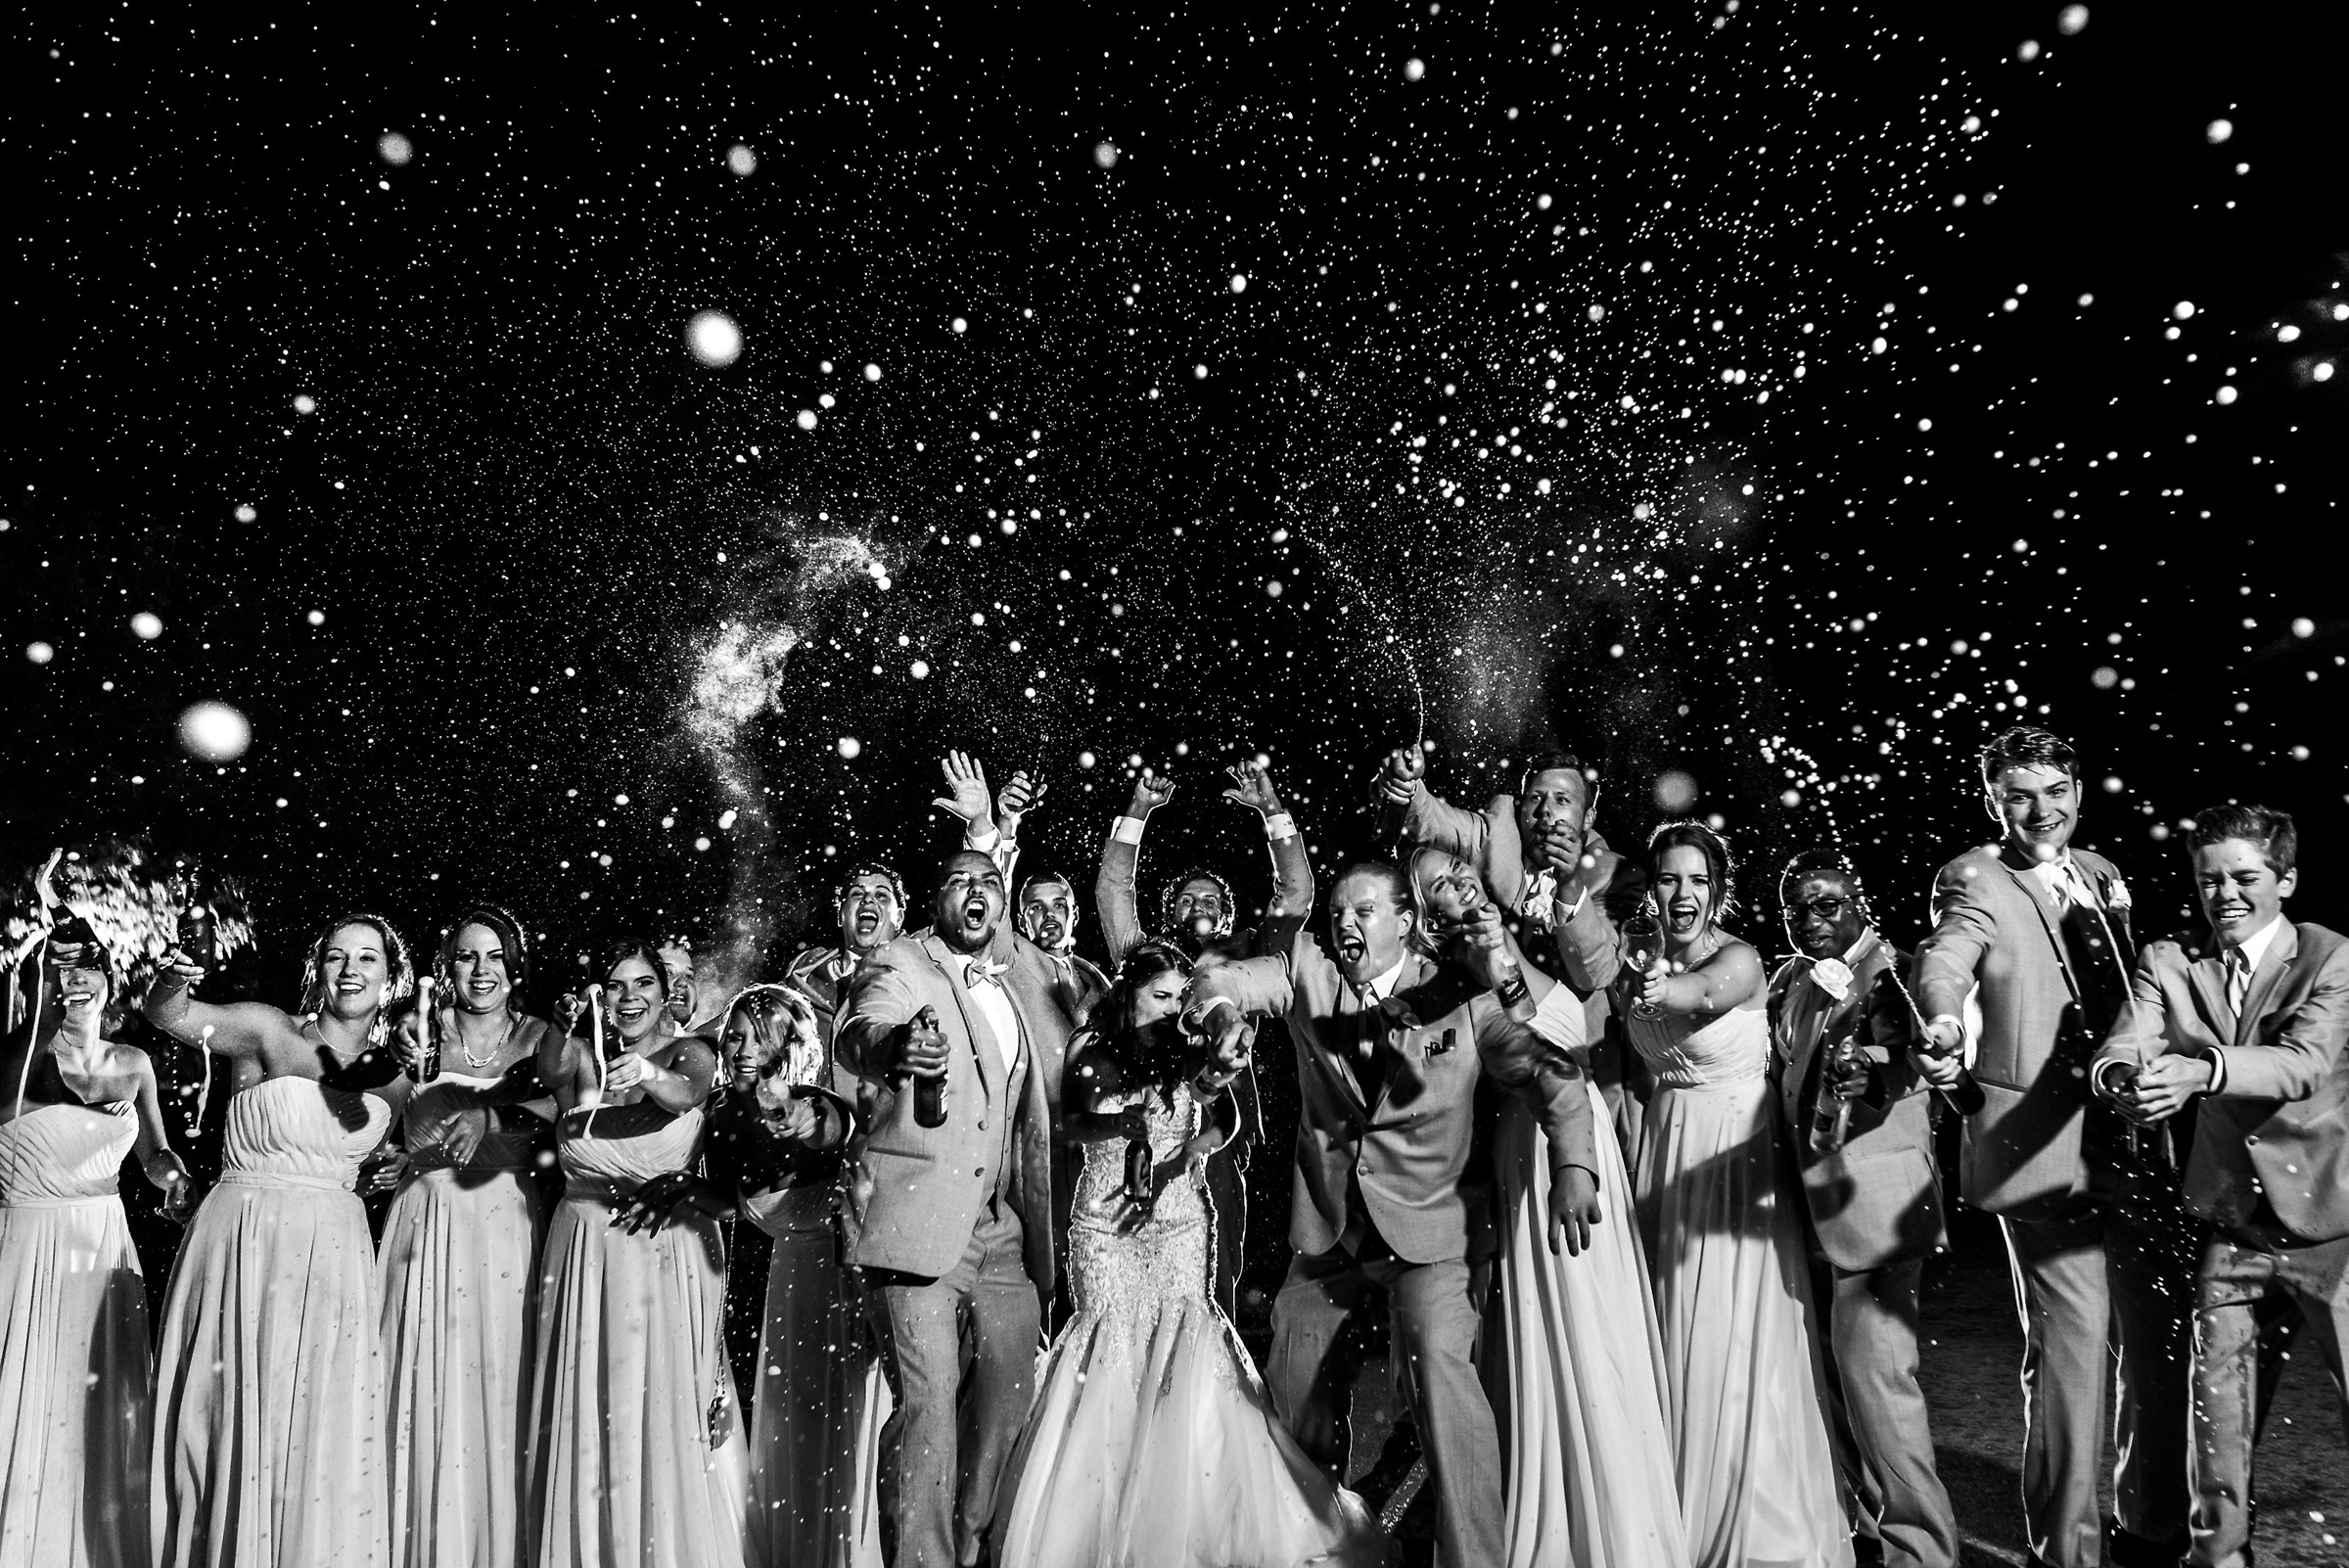 group-shot-of-bridal-party-popping-champagne-moore-photography